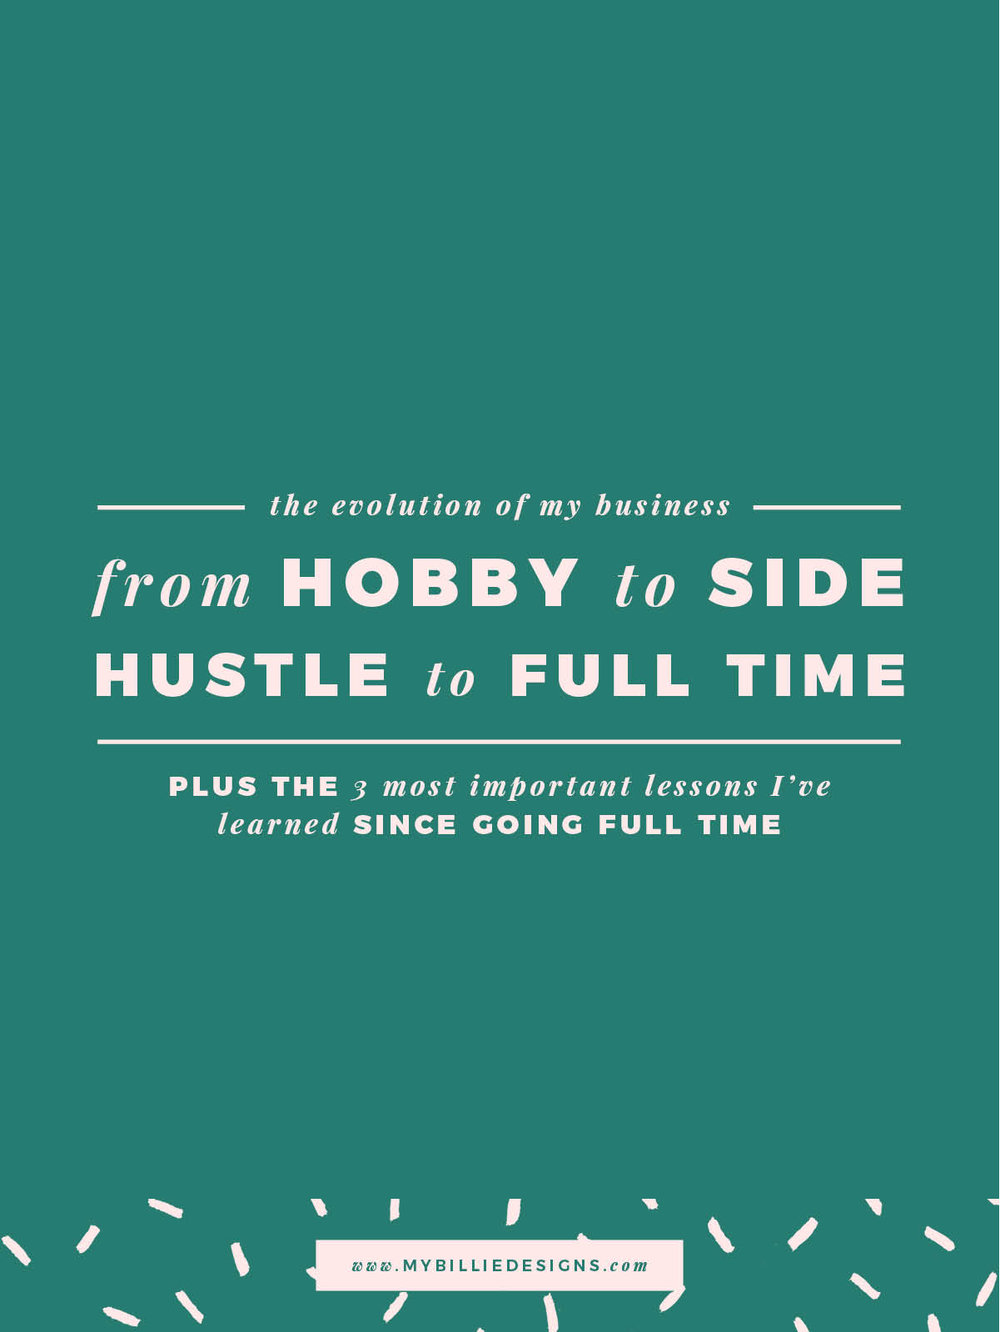 Business evolution: from hobby to side hustle to full time